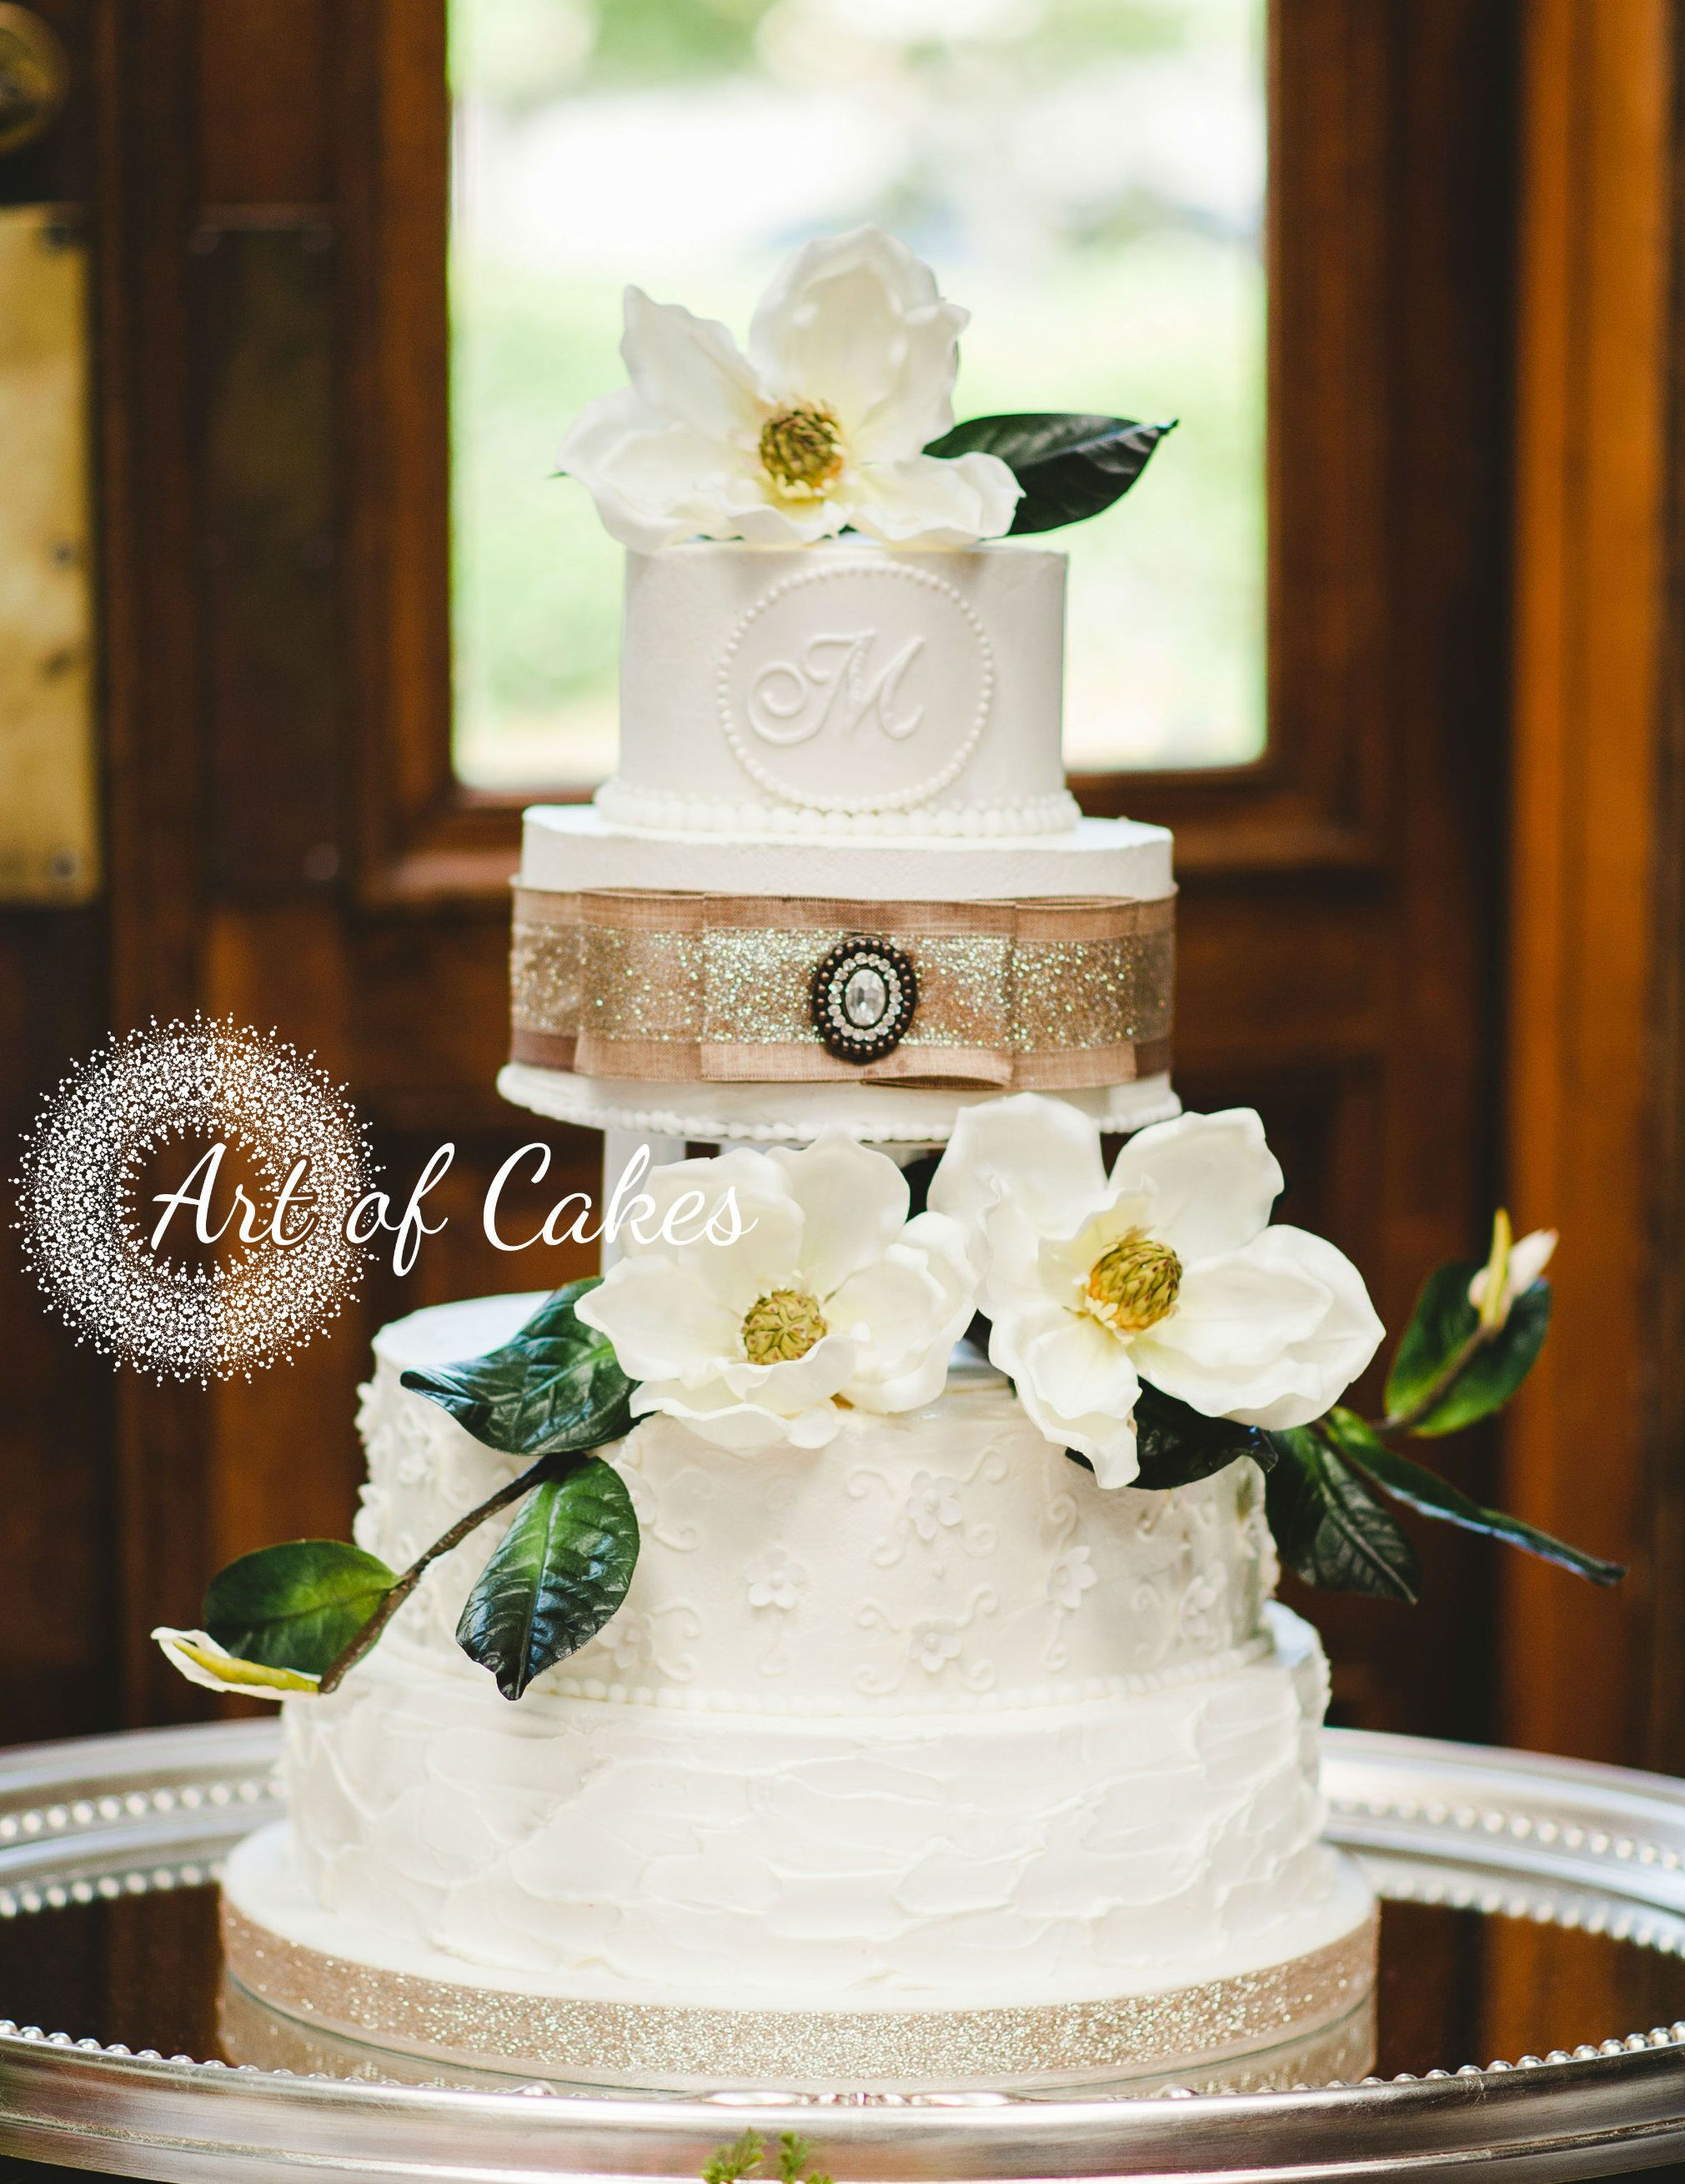 4 Tier Buttercream Wedding Cake With Magnolia Flowers At The Orangery In  Knoxville, Tn. Cake Made By Art Of Cakes In Maryville, Tn.  Www.artofcakesbakery.com ...